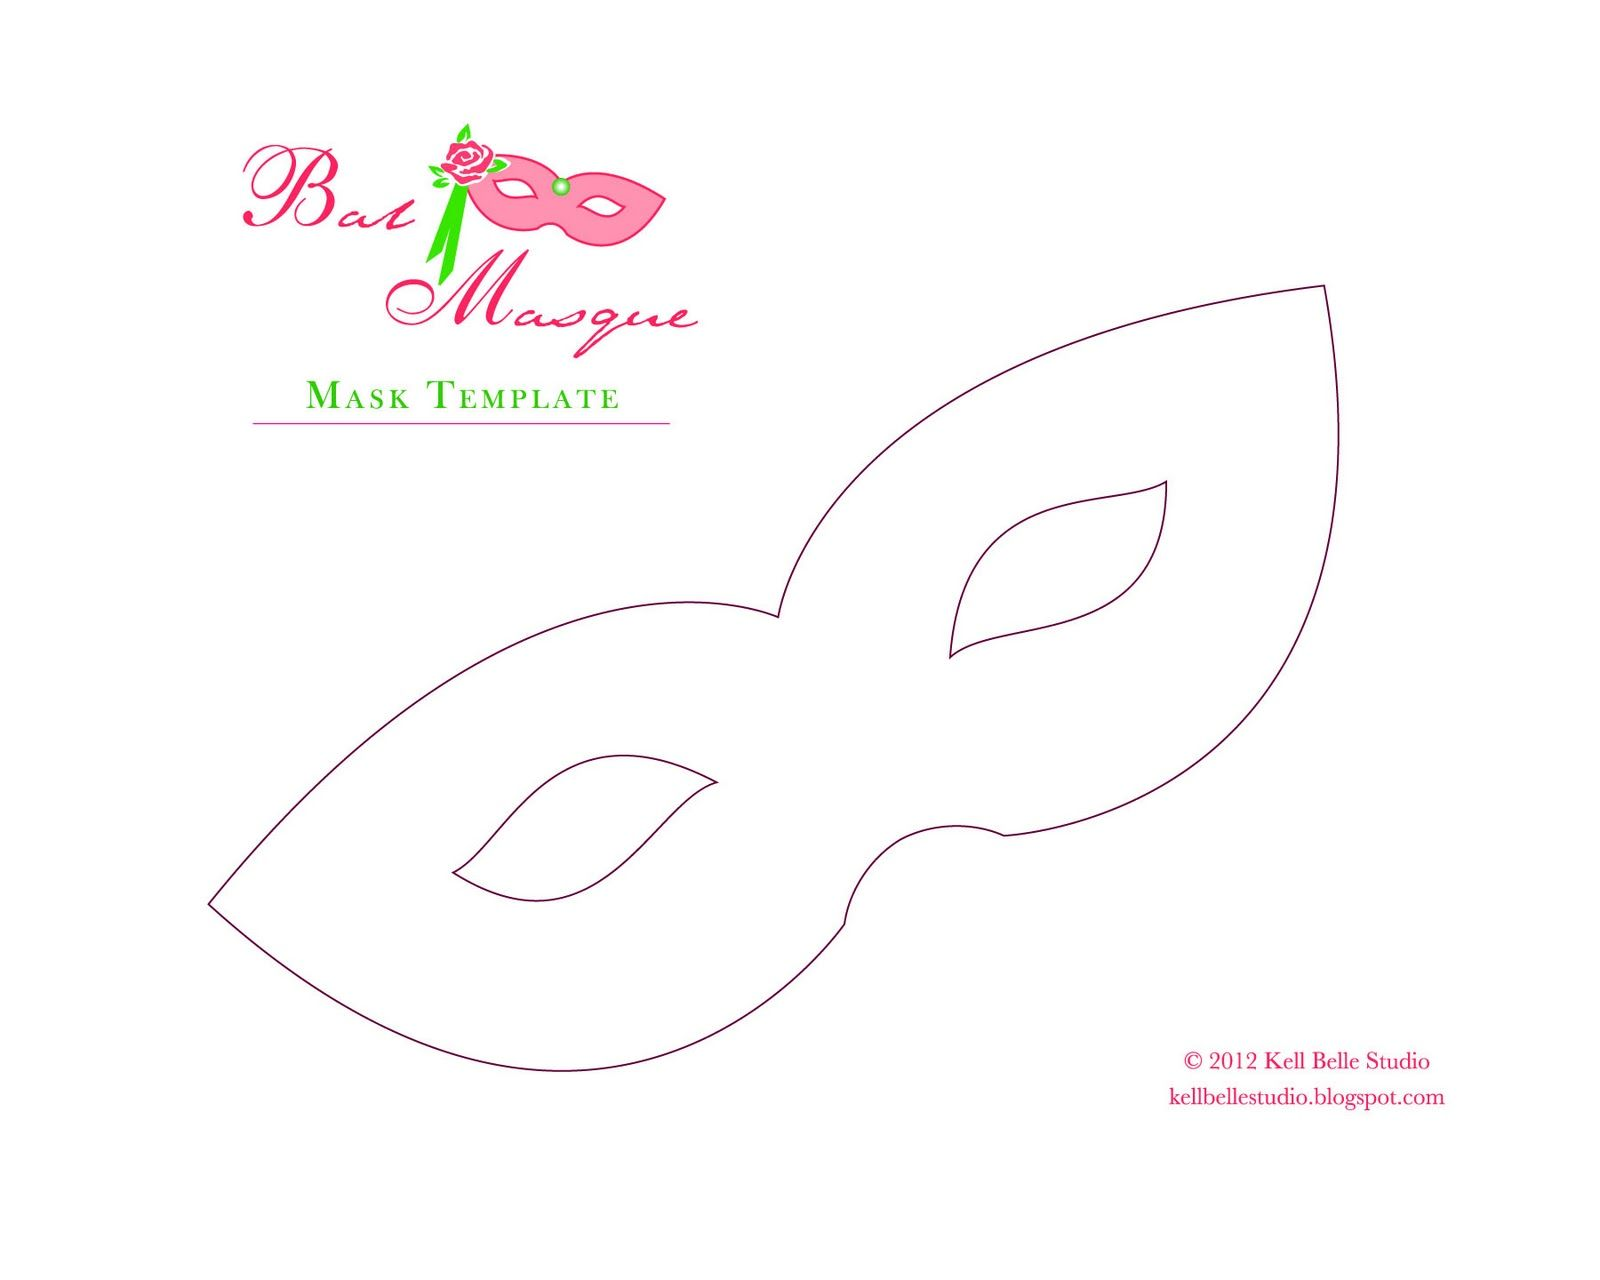 Free Mardi Gras Mask Template | Free Paper Mask Template   Click Image For  Full Size  Paper Face Mask Template